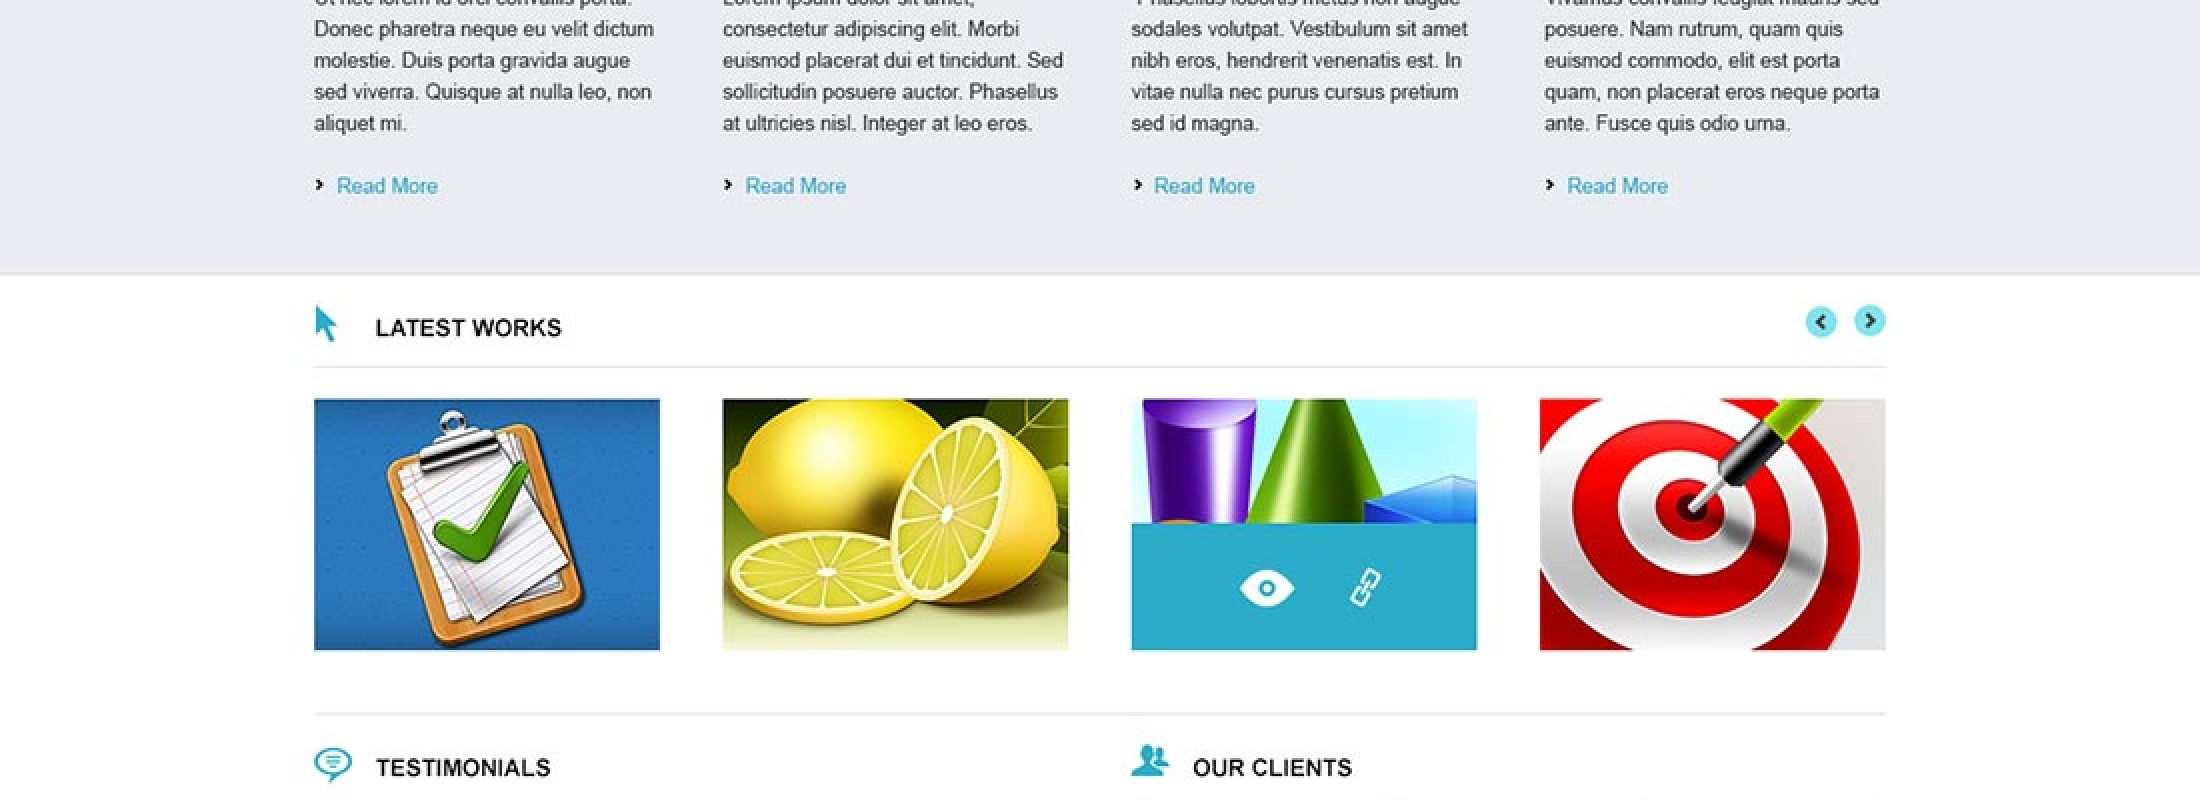 Modern iş web sitesi psd şablonu- Business website portfolio psd template